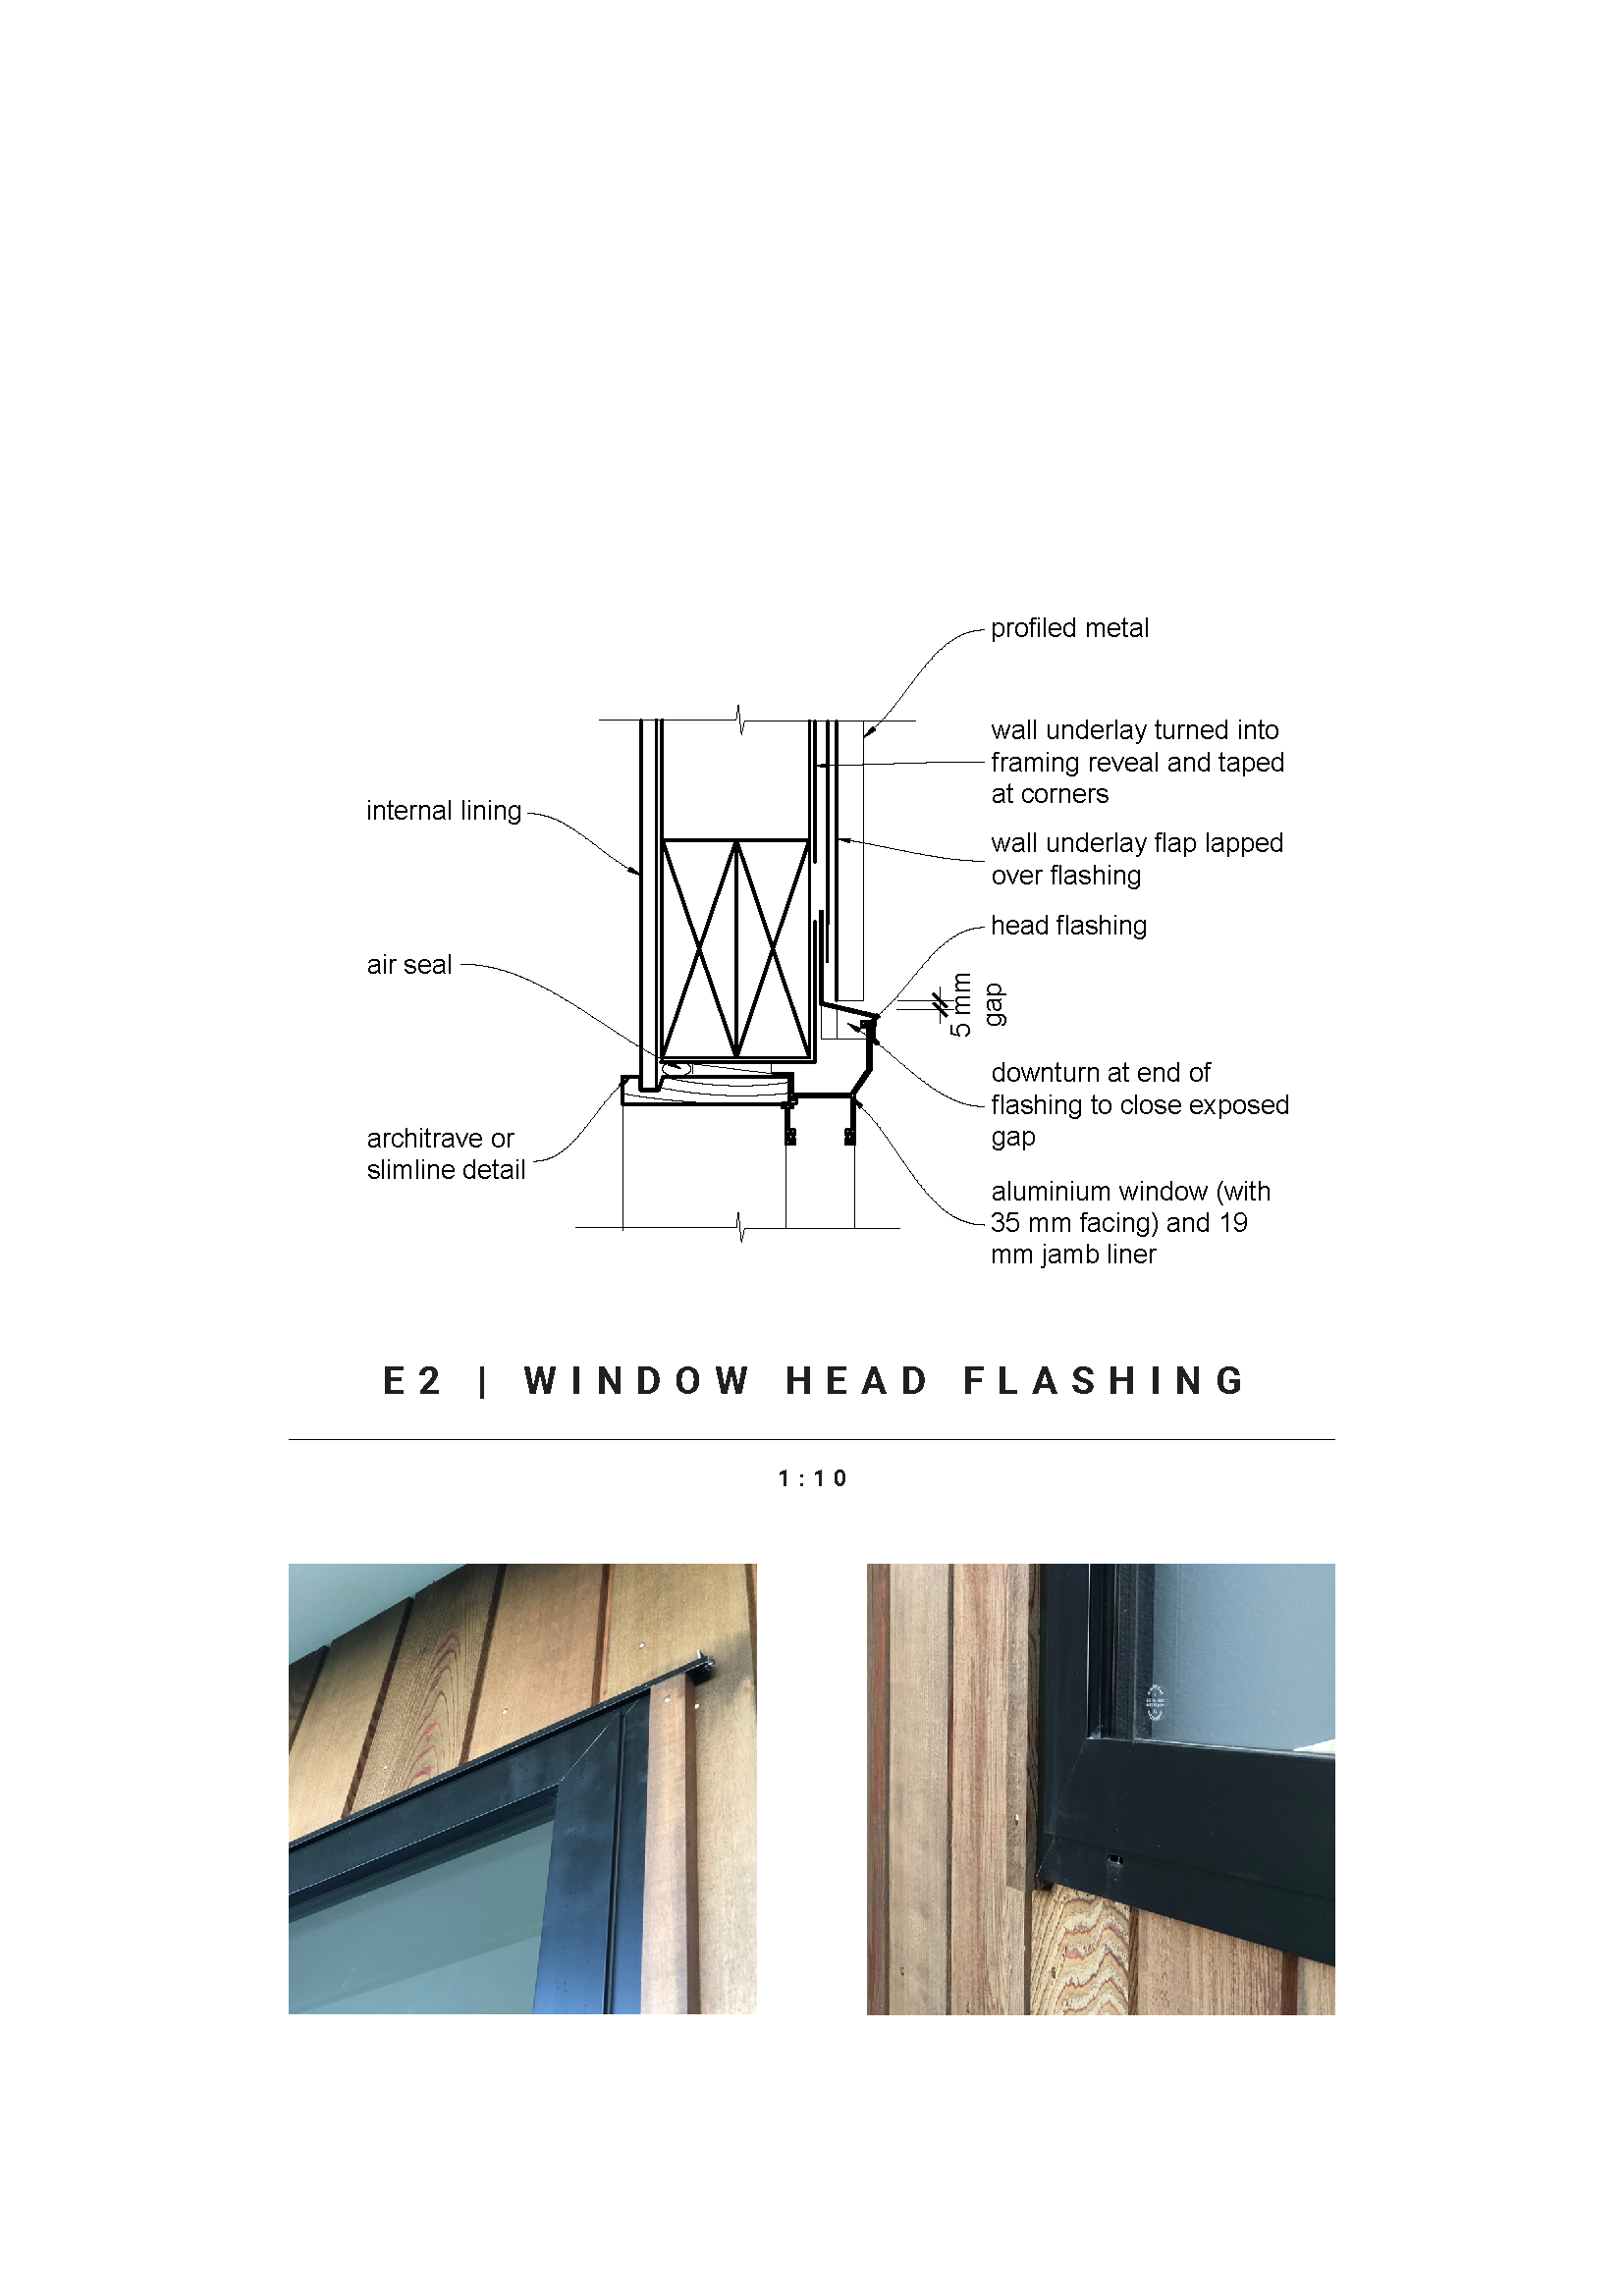 NZ BUILDING CODE JOURNAL_Page_13.png